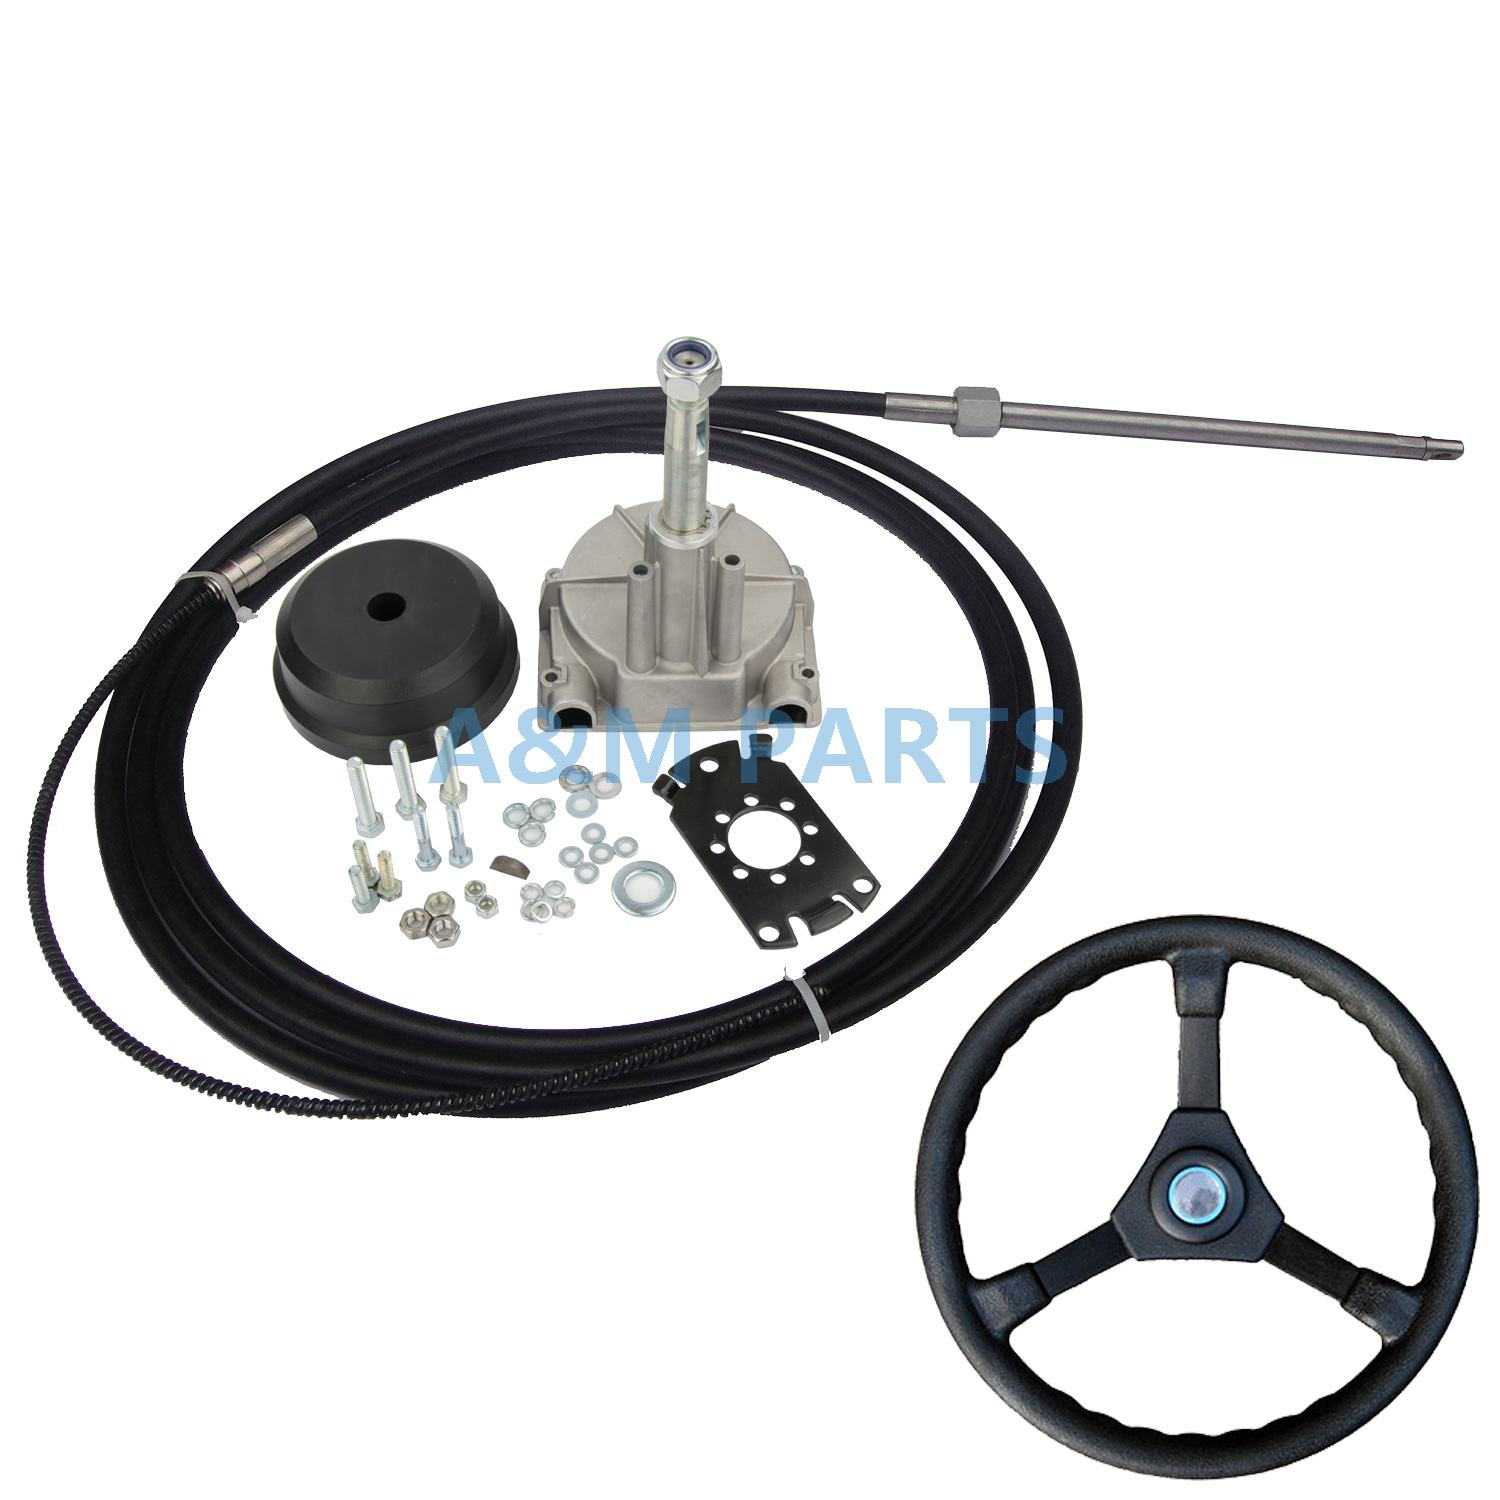 12FT Outboard Single Turbine Rotating Mechanical Steering System Cable Wheel